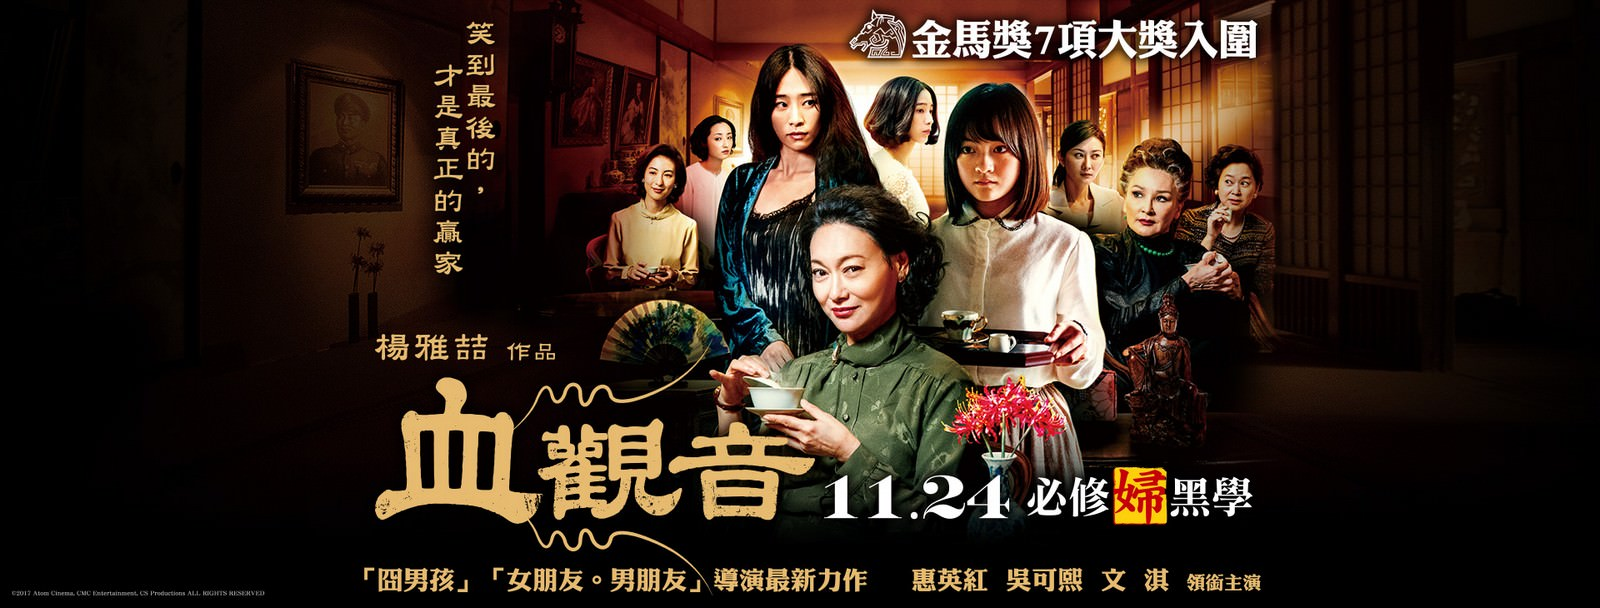 Movie, 血觀音(台灣, 2017年) / The Bold, The Corrupt, and the Beautiful(英文), 電影海報, 台灣, 橫版